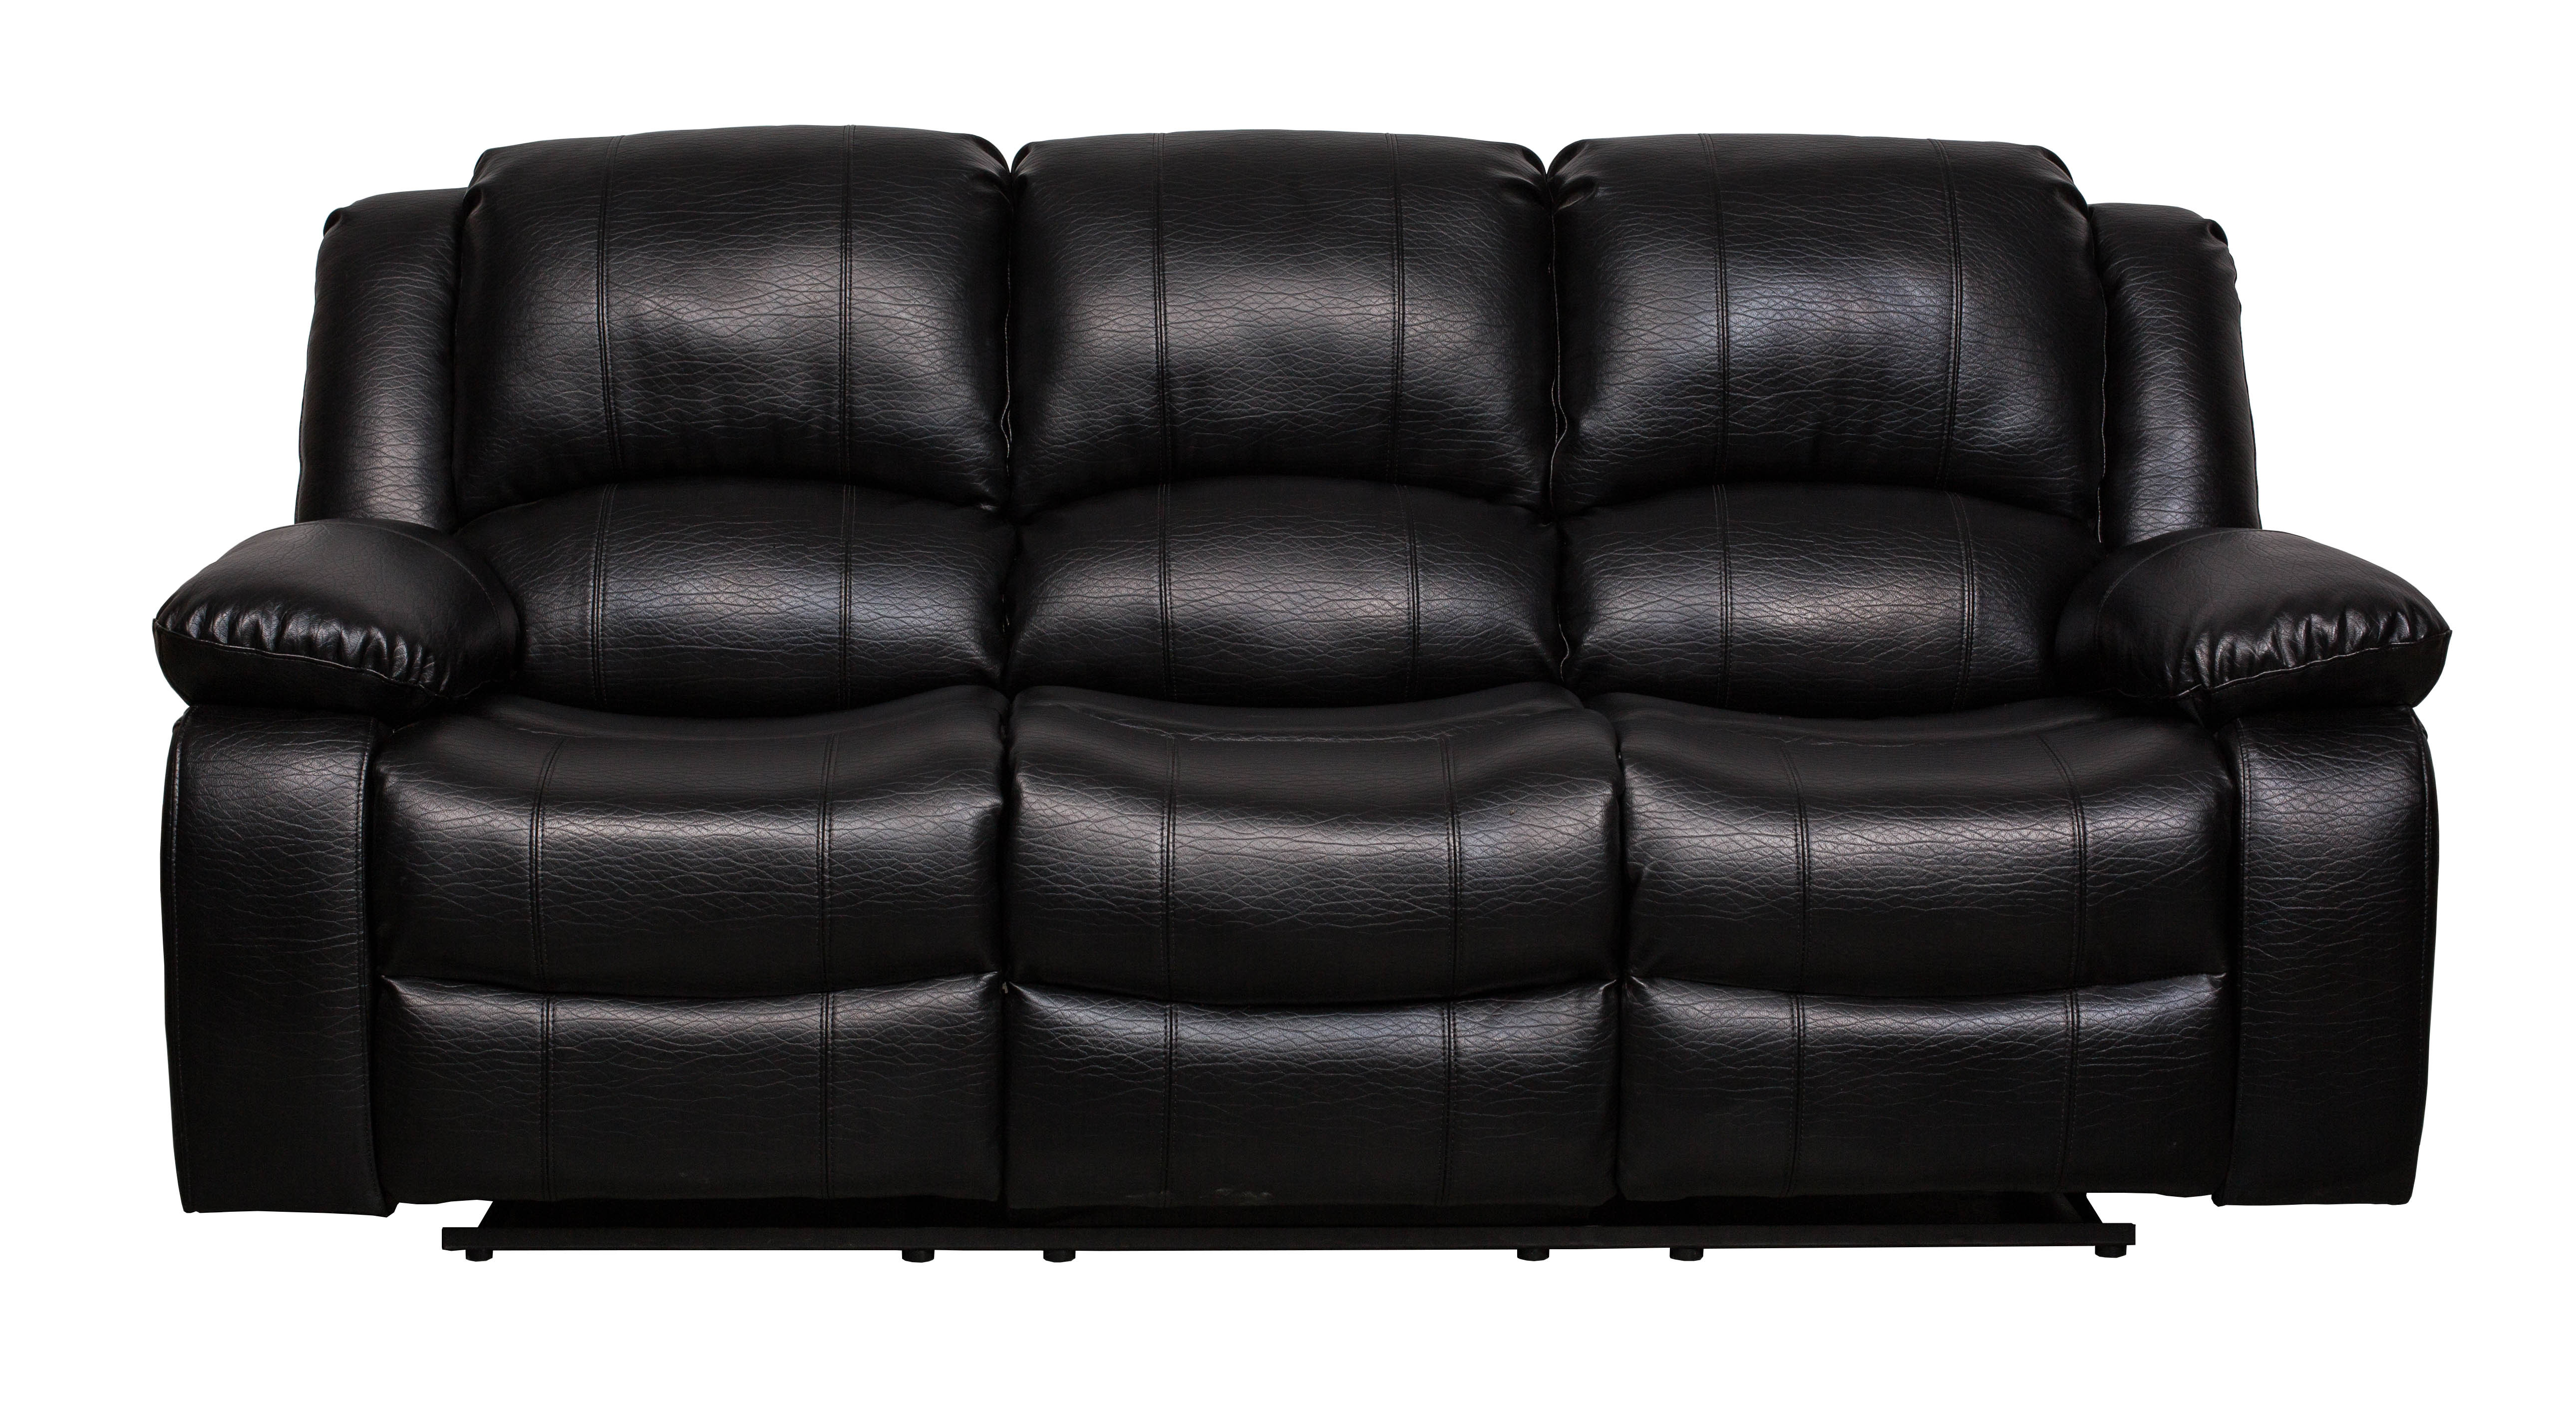 8026 Black Air Leather Sofa 8026 Bk Sofa Milton Greens Stars Lowest Price Possible With Best Possible Value